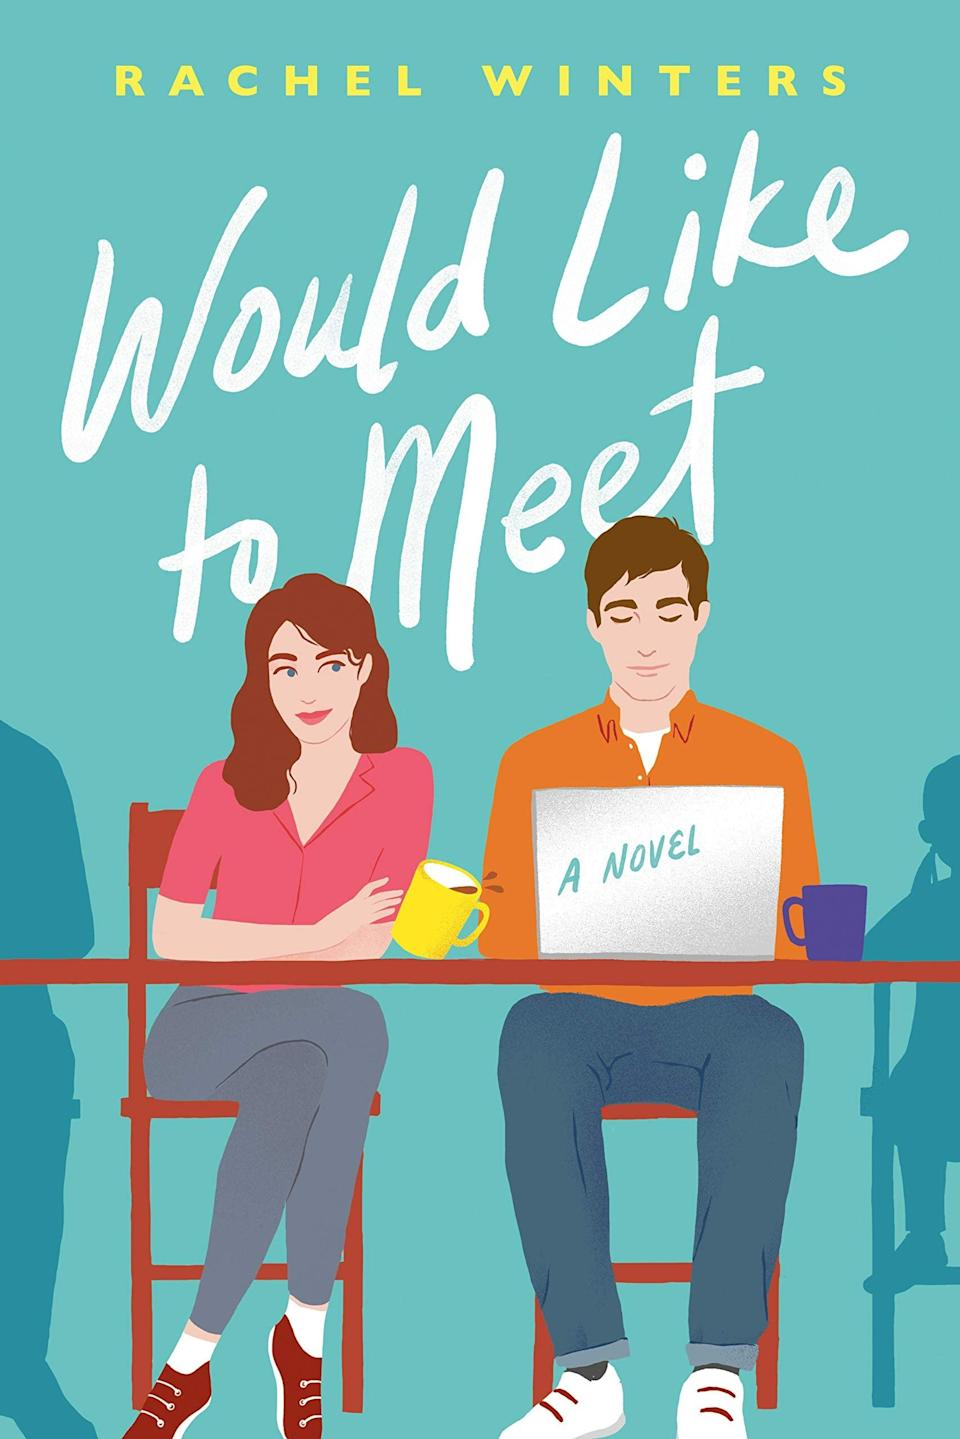 <p>You can't get more meta than a rom-com about the making of a rom-com - but that's what makes this one so fun. In <span><strong>Would Like to Meet</strong> by Rachel Winters</span> ($13), Evie is an assistant working at a talent agency that manages an up-and-coming screenwriter contracted to write a rom-com screenplay. The only problem? He doesn't believe in rom-coms. To prove him wrong and help with his writer's block, Evie sets out to reenact the most memorable meet-cutes all across London, inspired by her favorite classic films.</p> <p>I love how this story uses the tropes and clichés we all know and love from rom-coms and deconstructs them, while still essentially being a rom-com itself. It's warm, funny, and delightfully unexpected.</p>